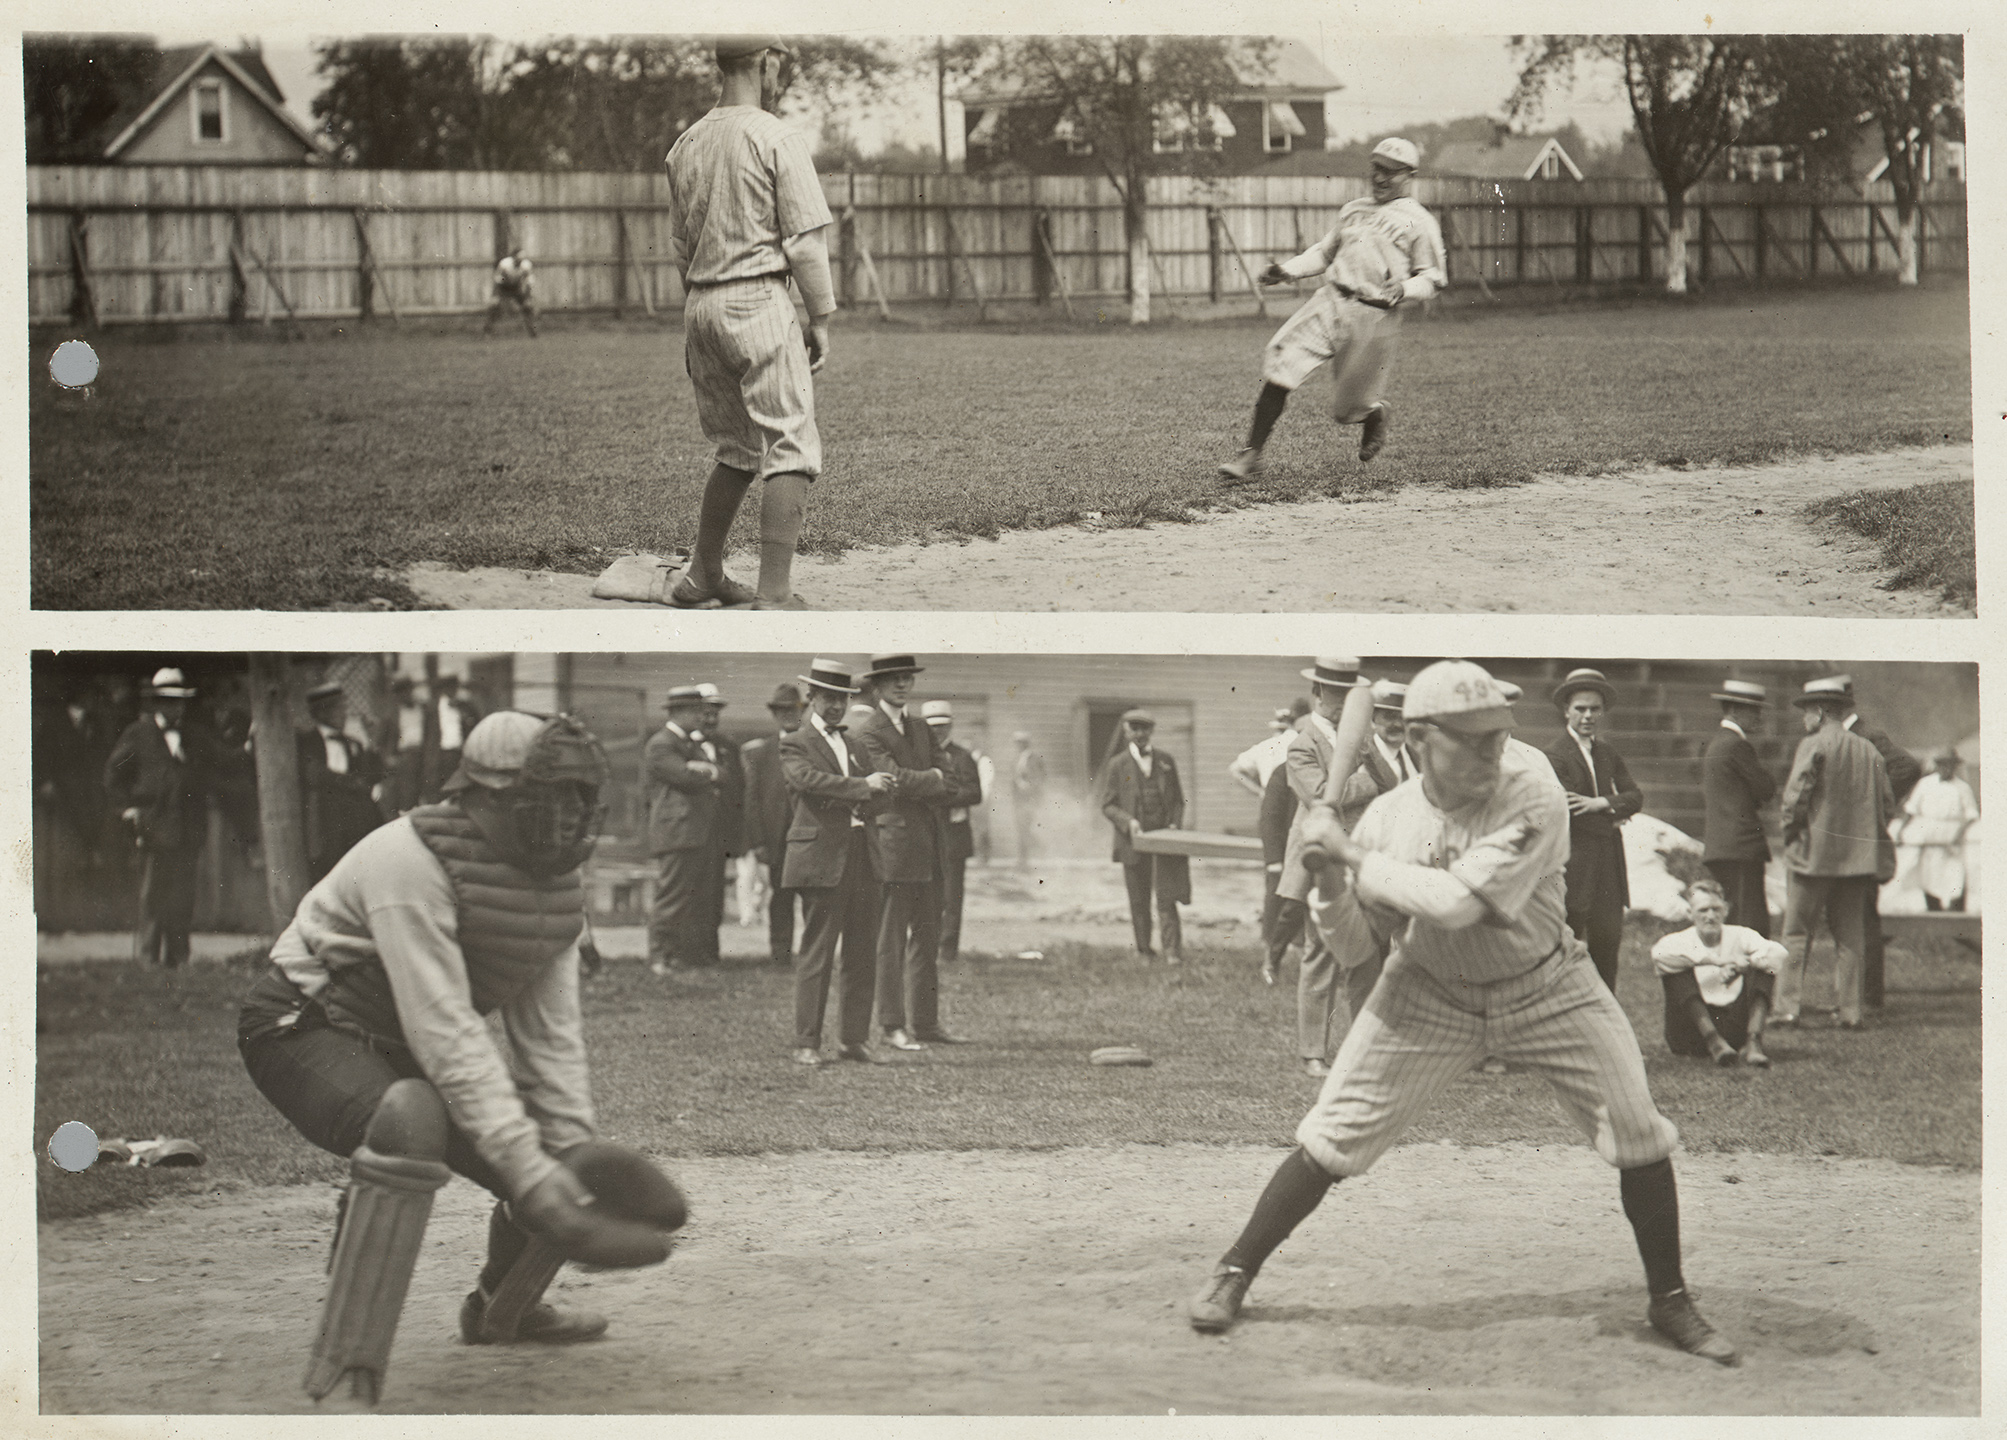 Scenes from baseball game, Elks Club Clambake, Midland Park, Grant City, Staten Island, August 1924. NYC Municipal Archives Collection